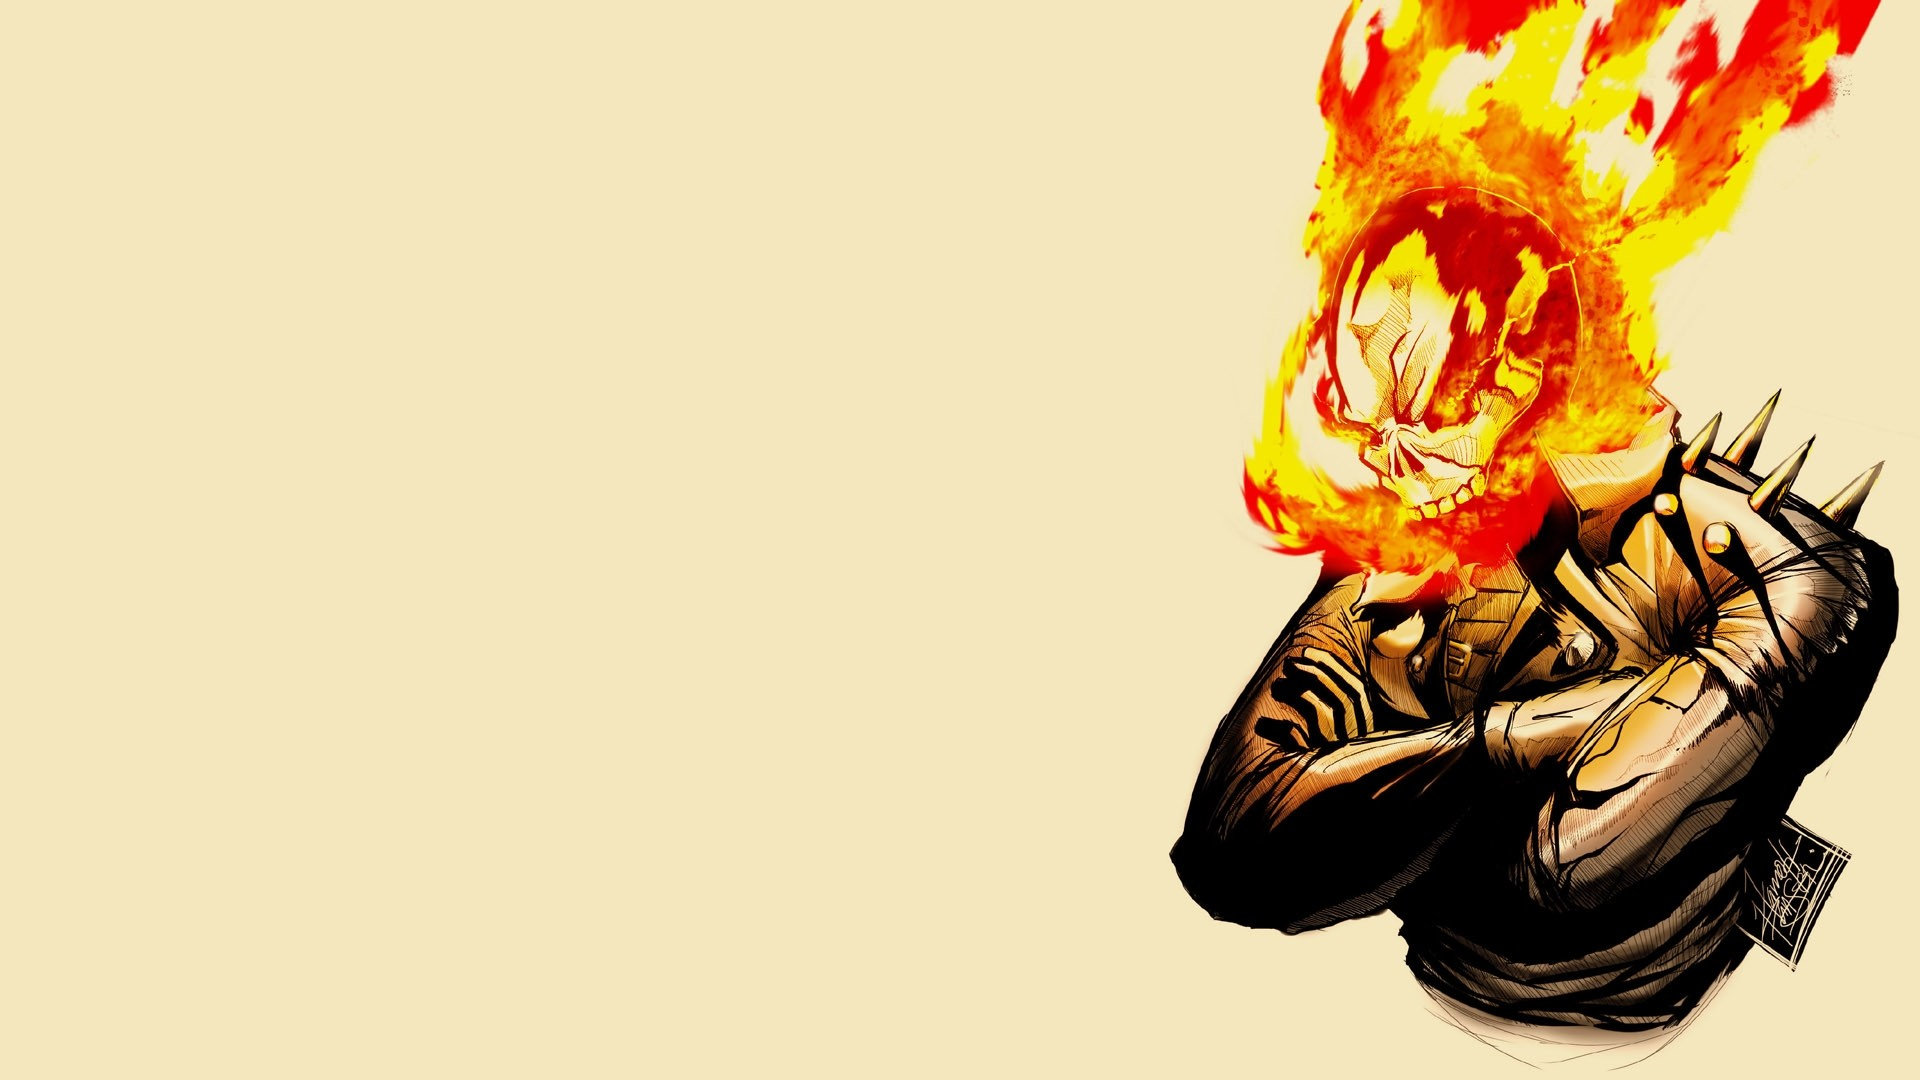 ghost rider 2 wallpaper mobile